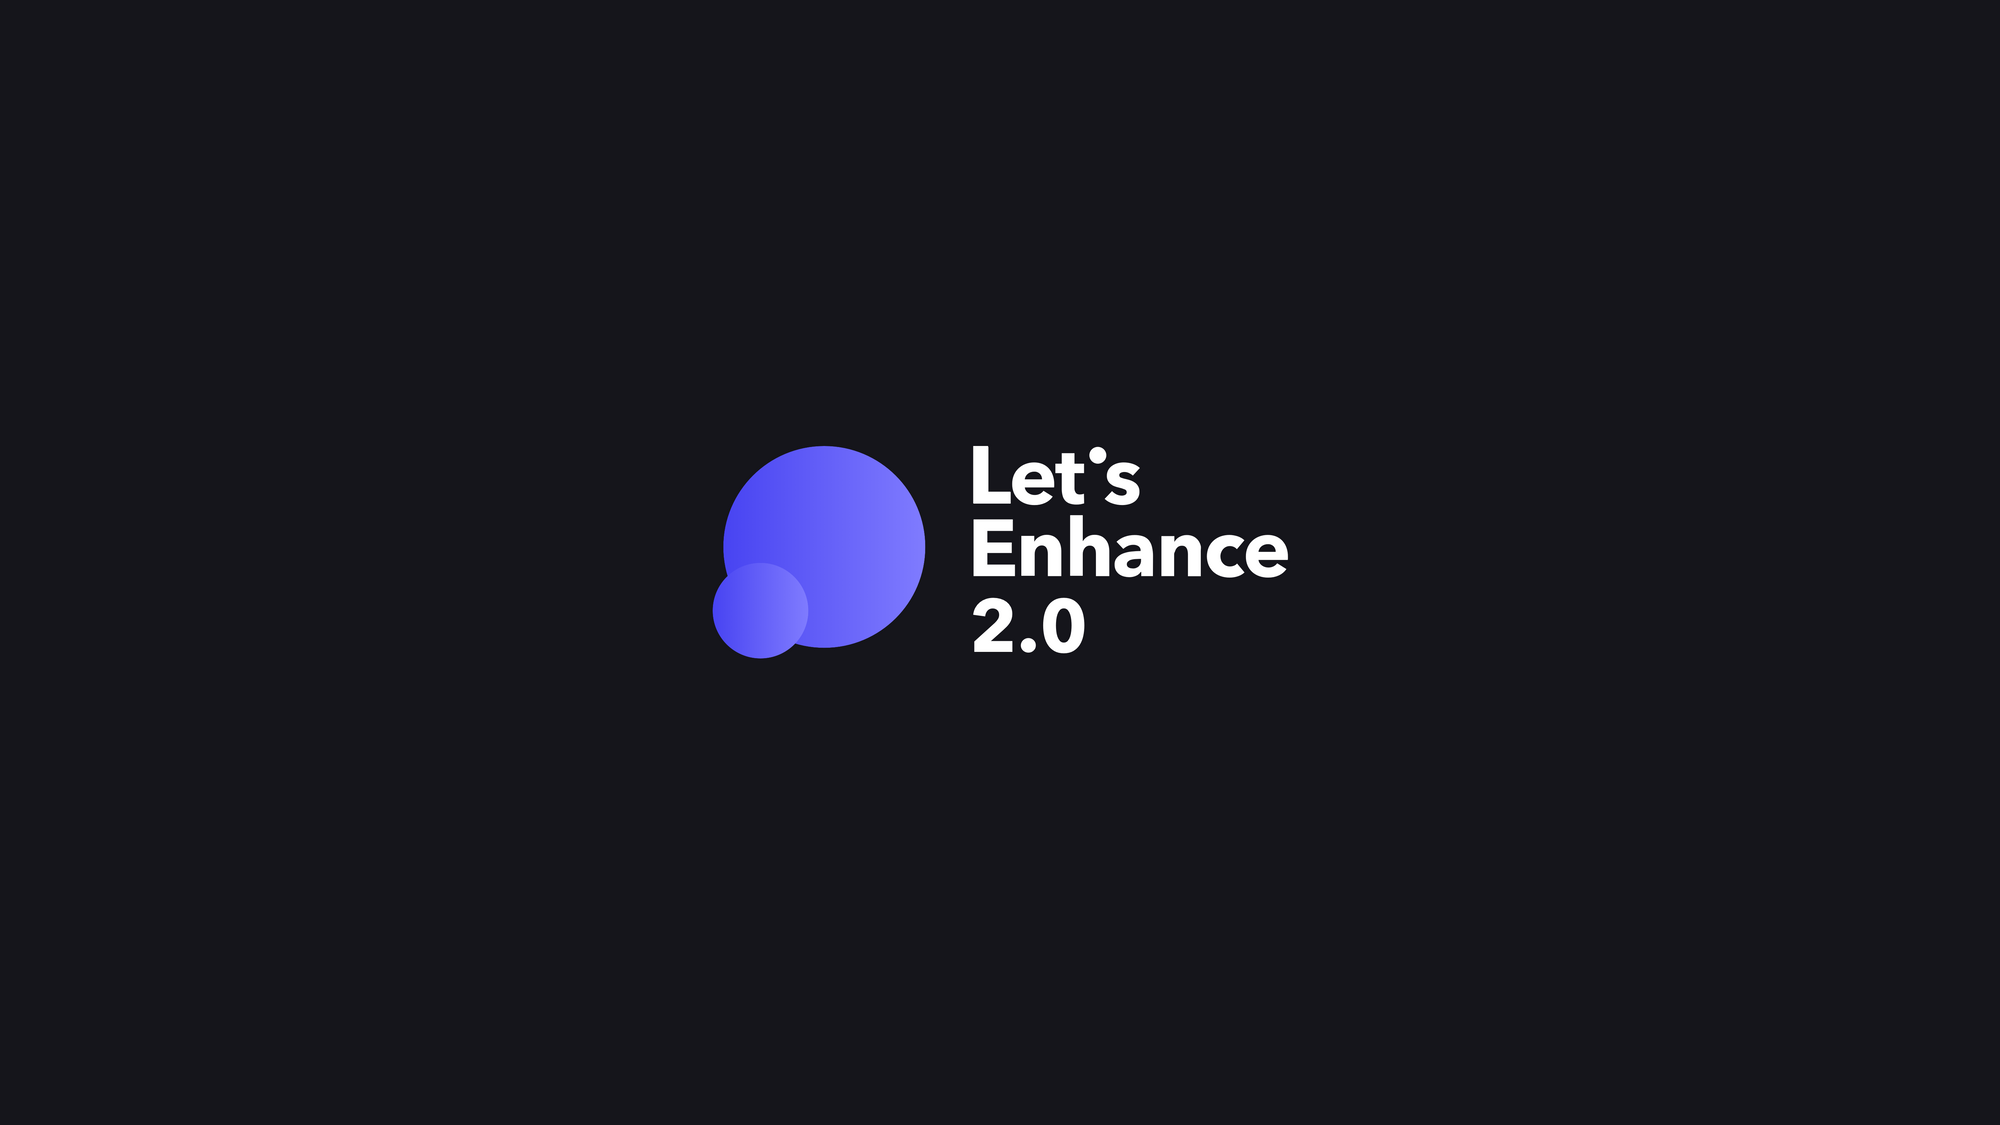 Introducing Let's Enhance 2.0